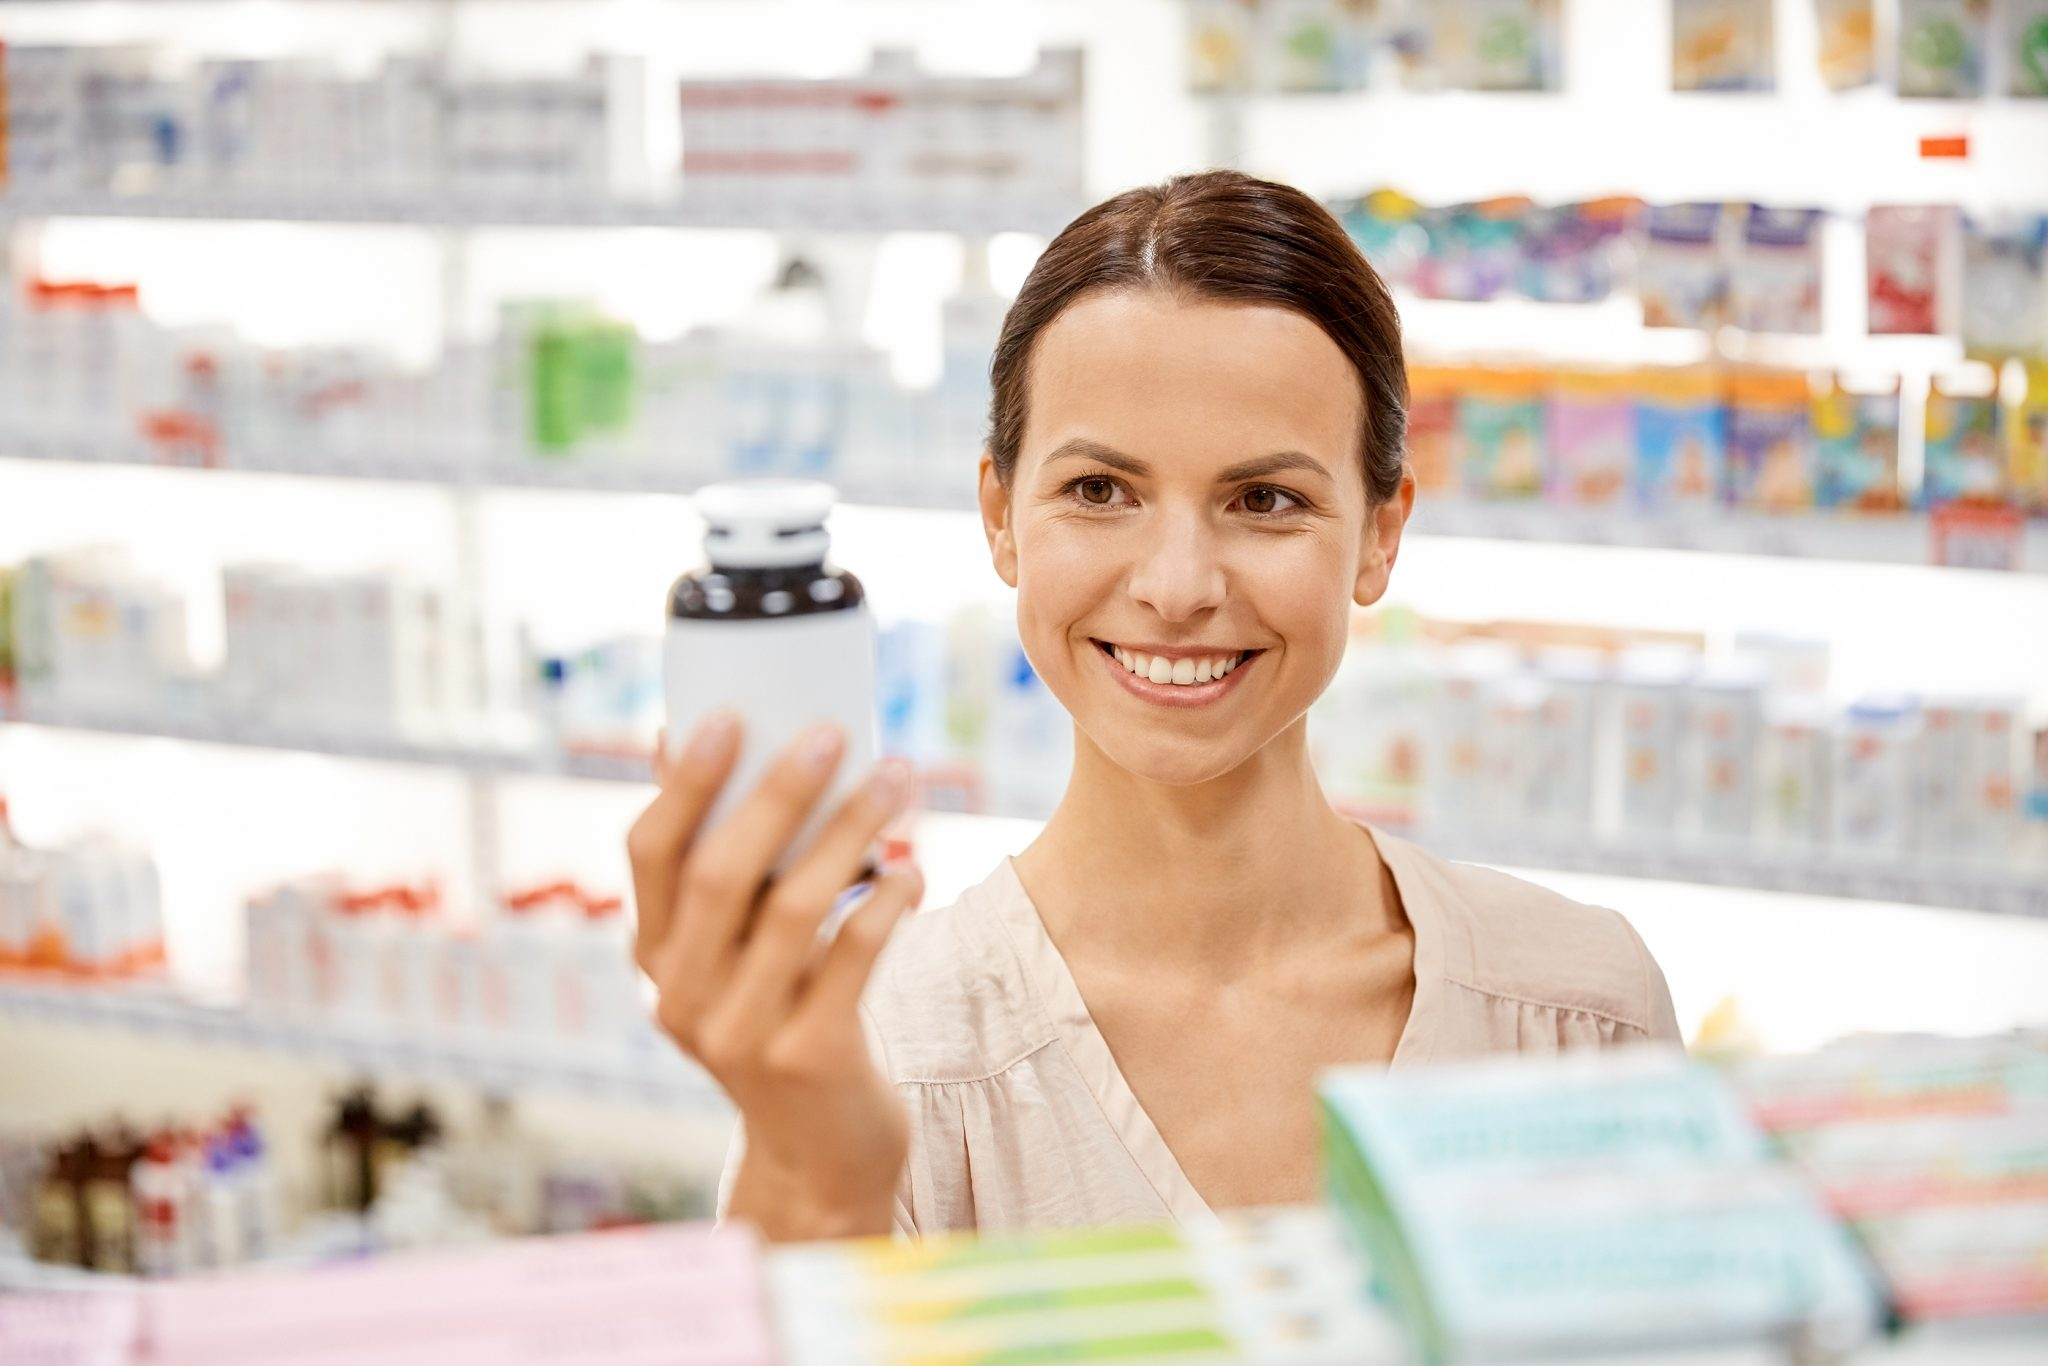 Pharmaceutical sales representative holding up a bottle of pills